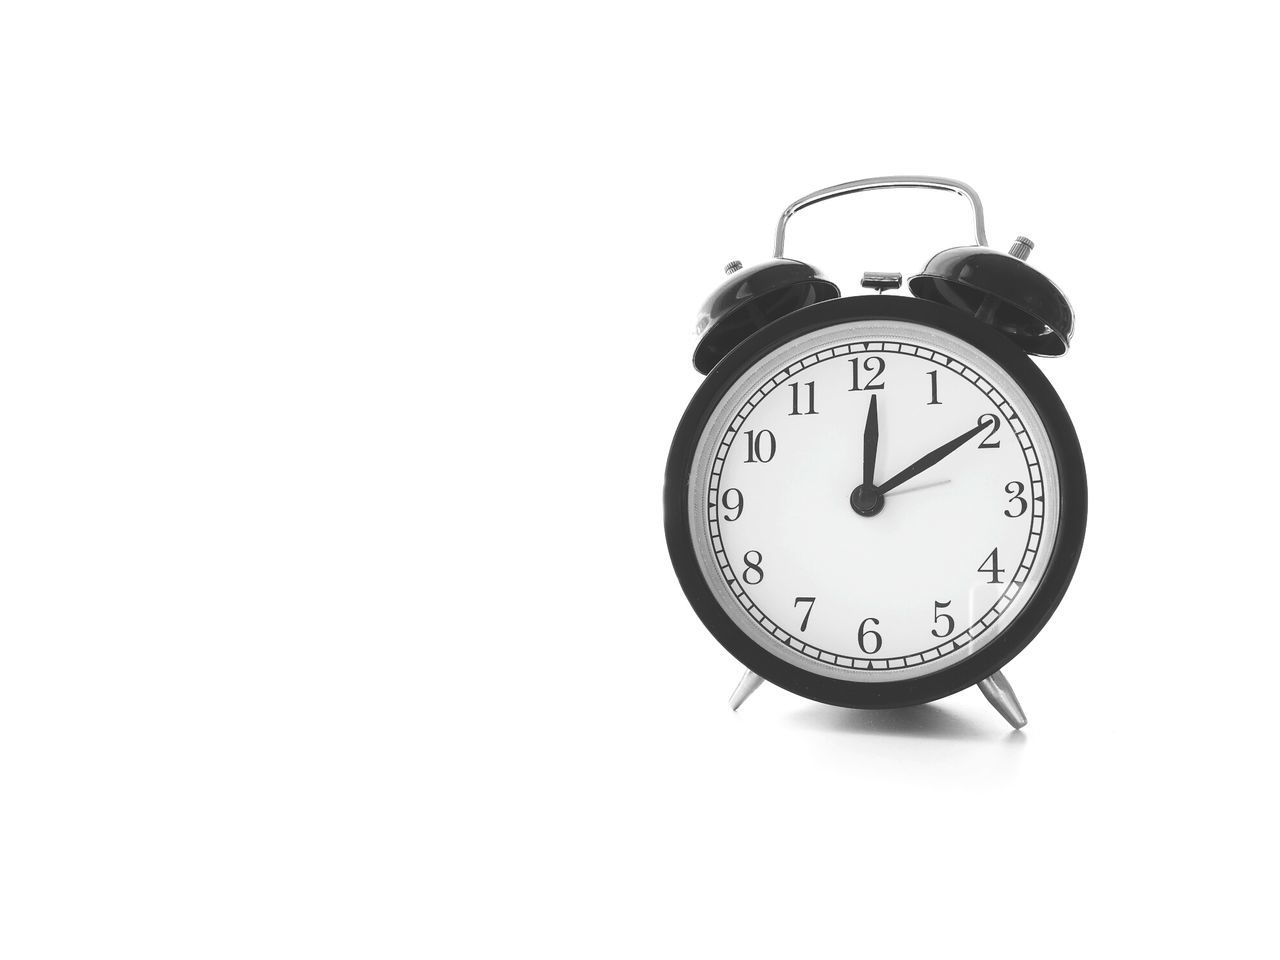 Time Clock Alarm Clock Number Clock Face Old-fashioned White Background Minute Hand Hour Hand Midnight Day Countdown Close-up No People Times Single Object Blackandwhite Alarm First One AlarmClock Old-fashioned Noon Time Afternoons